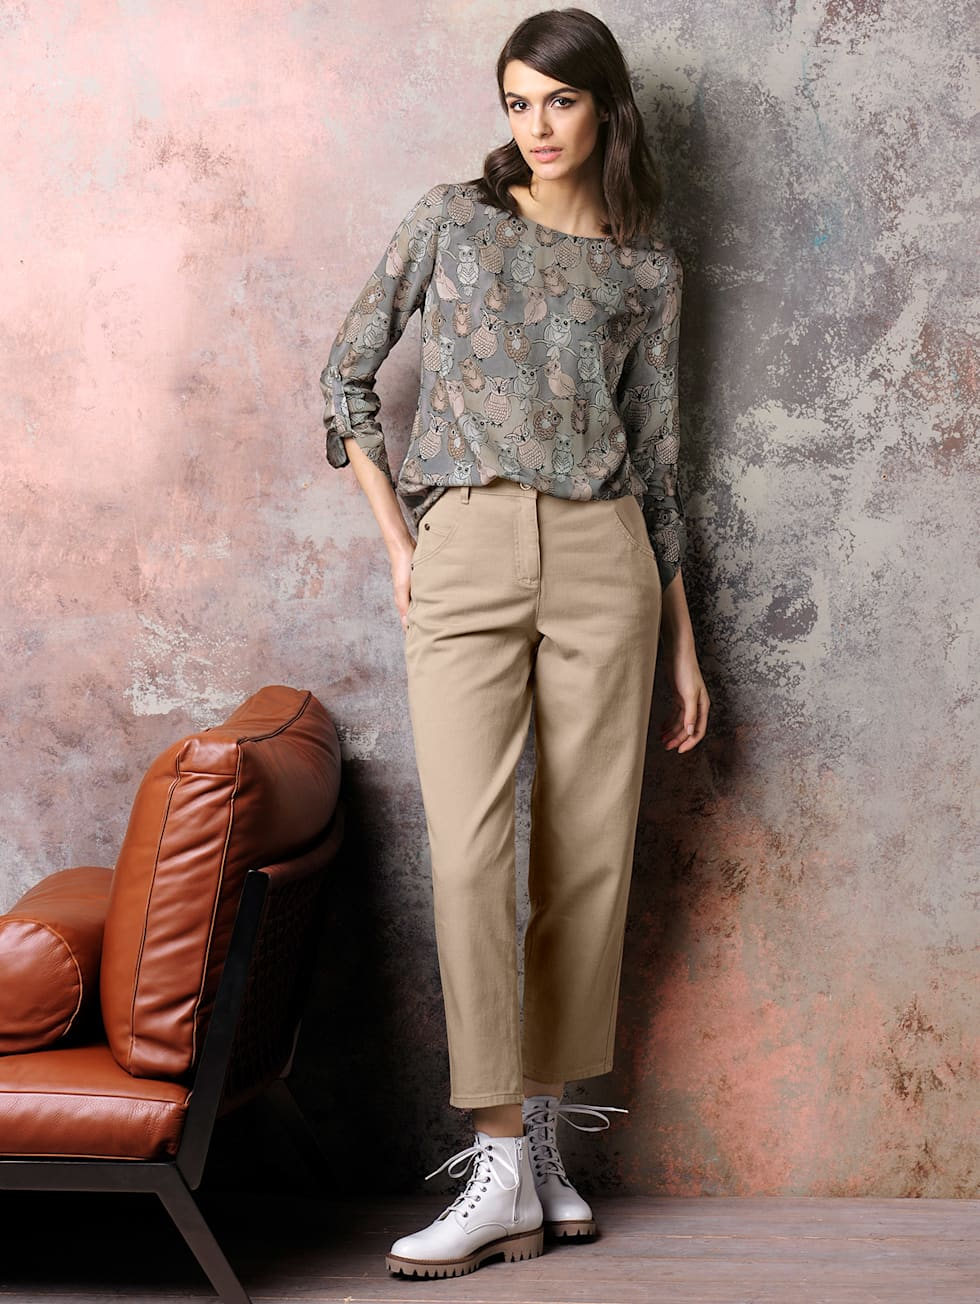 KW26_Outfit_Soft_Tones